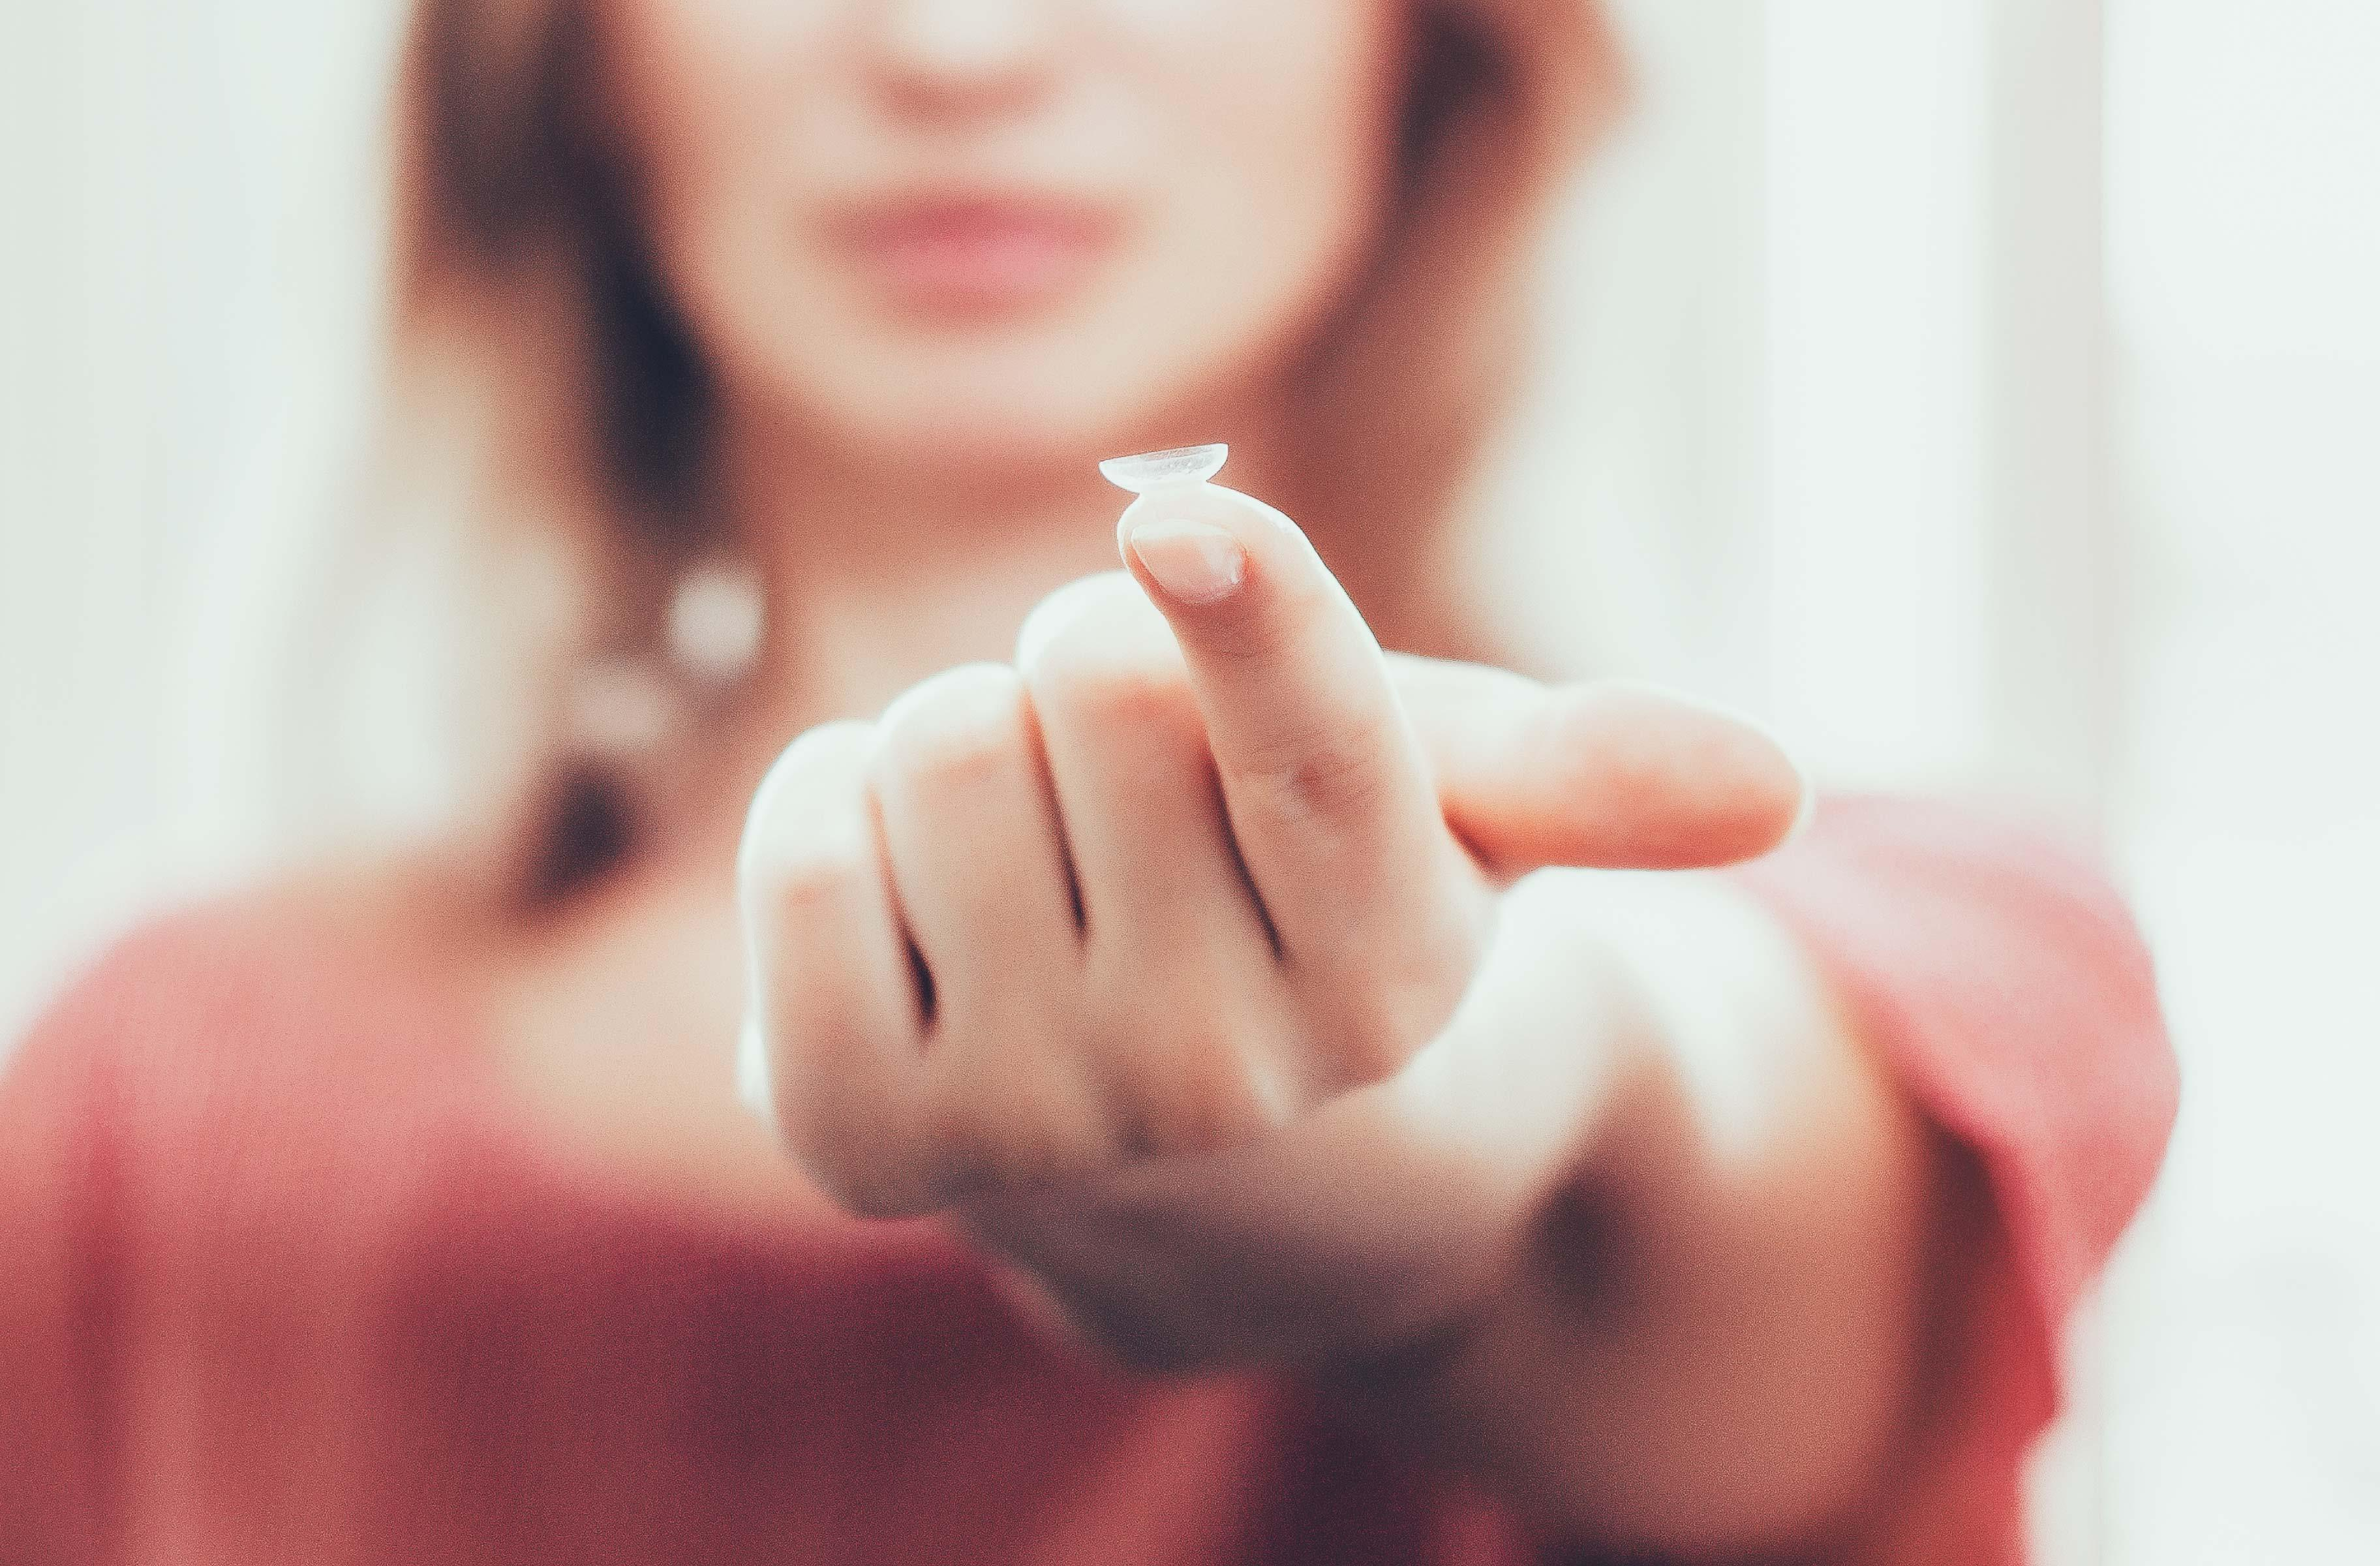 A woman is holding a contact lens on her finger